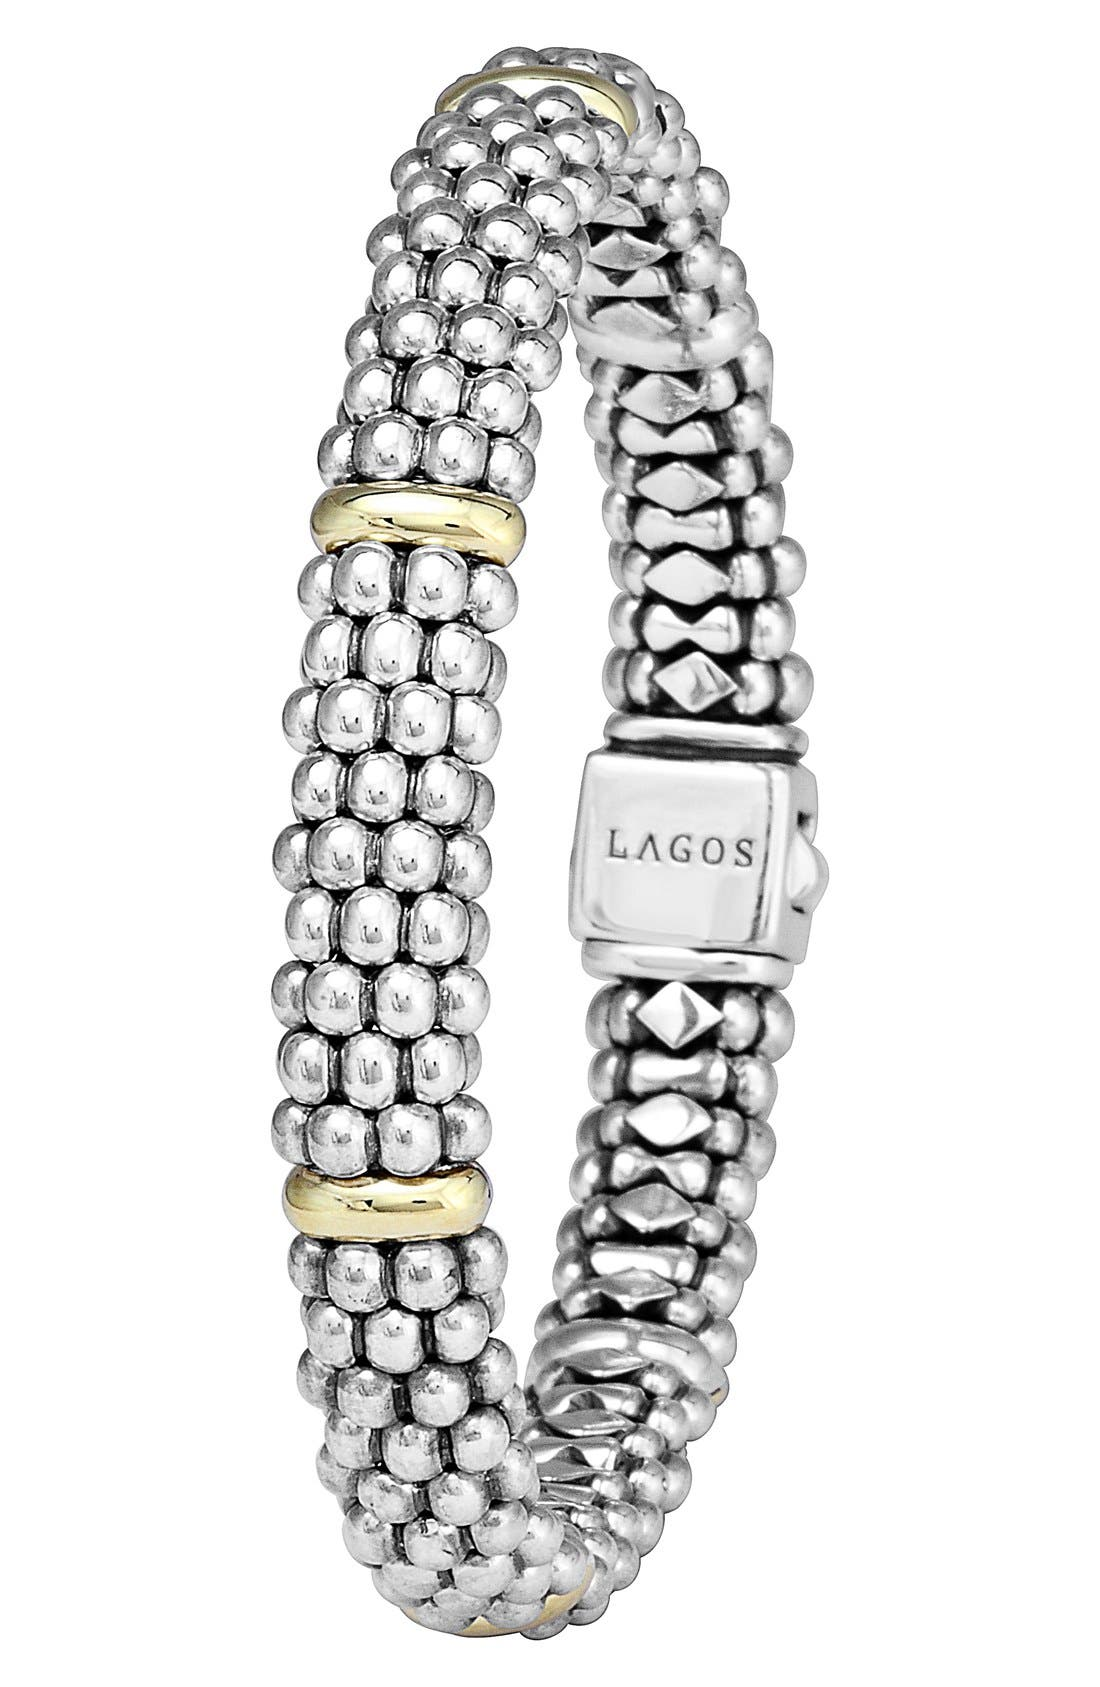 Caviar Rope Bracelet,                             Alternate thumbnail 3, color,                             SILVER/ GOLD